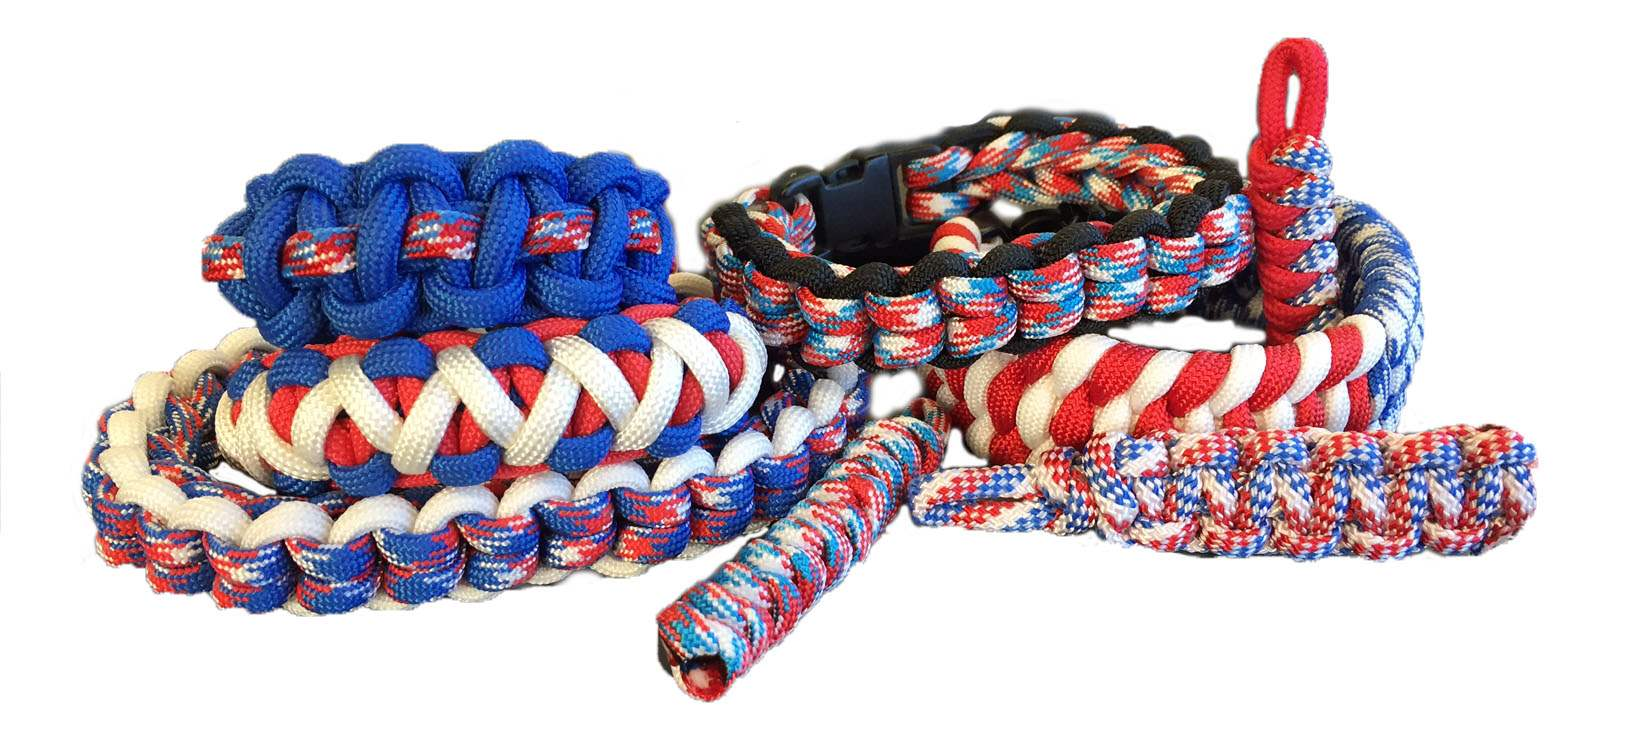 Patriotic Paracord Projects